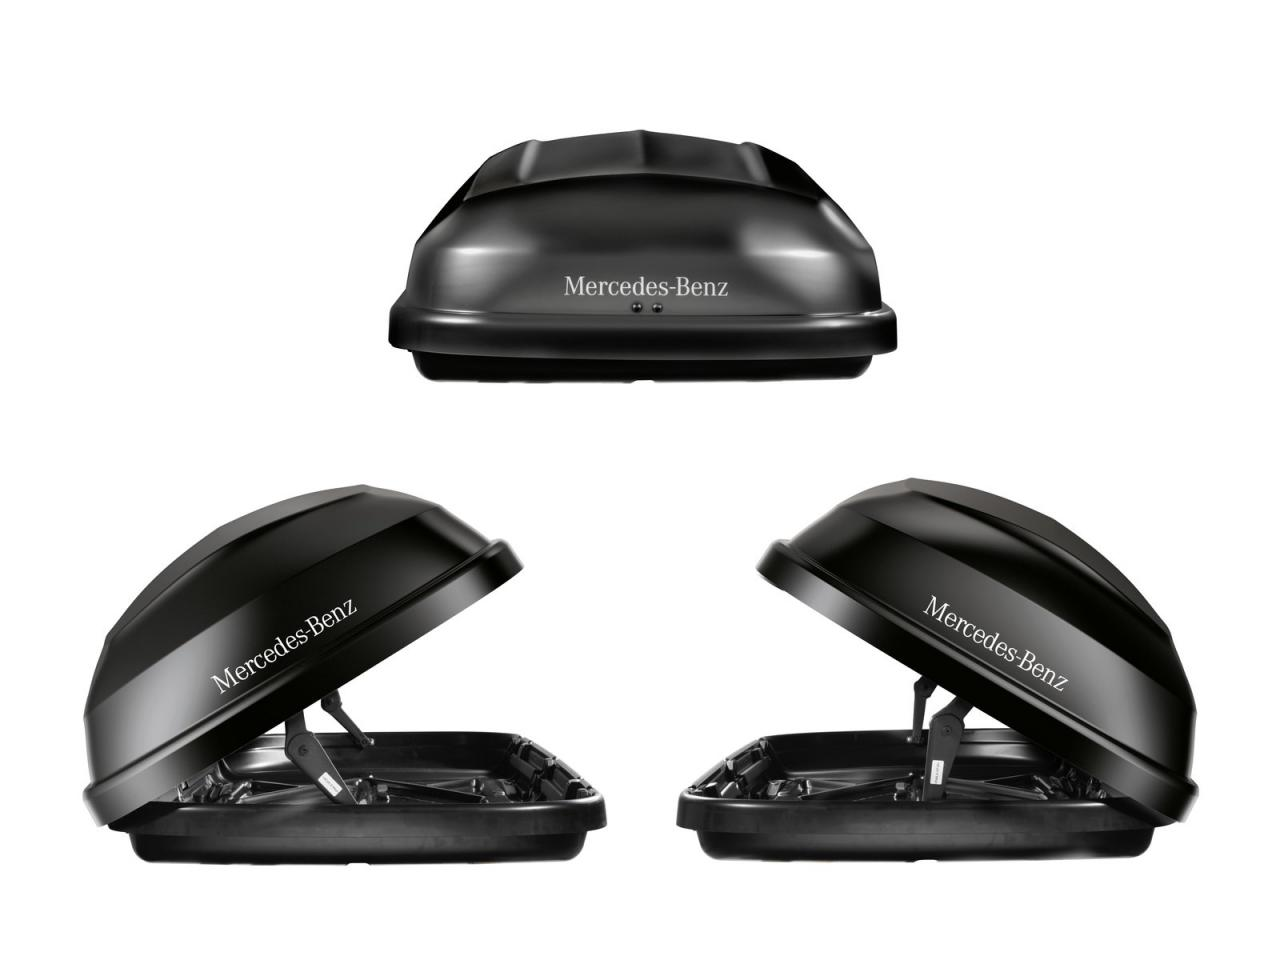 Mercedes introduces accessories for m and b class for Accessories for mercedes benz